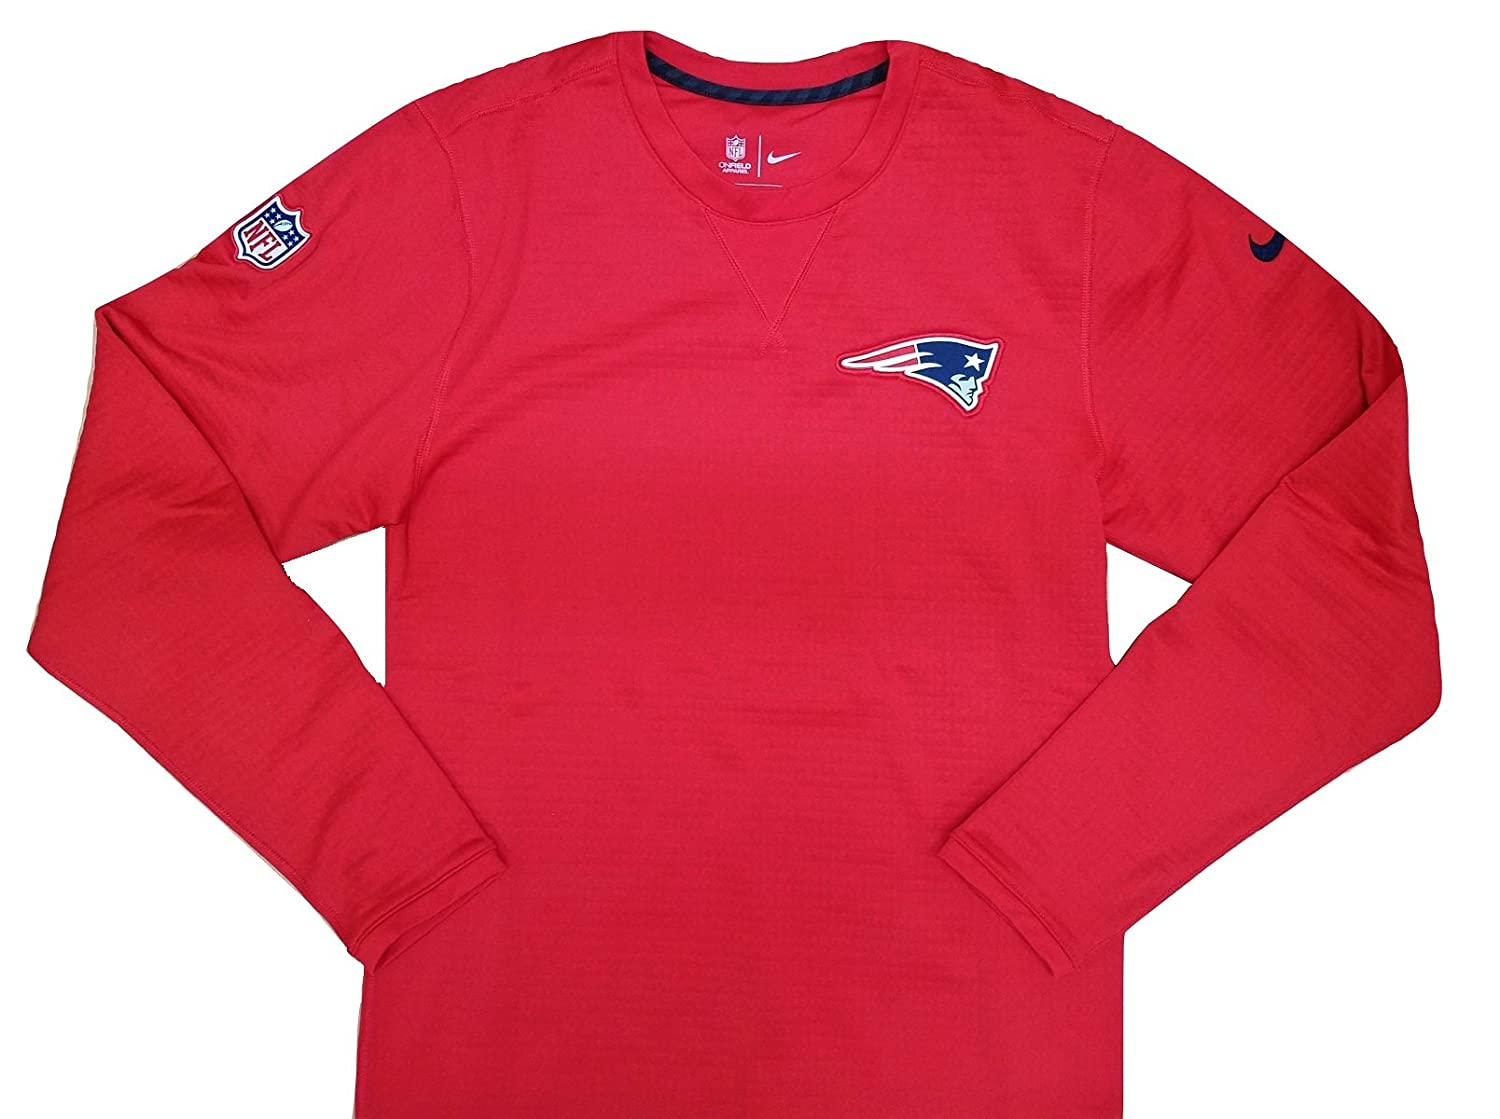 Amazon.com  Nike Men s New England Patriots Onfield Long Sleeve Fleece Tee  87553-657 Team Red (Small)  Home   Kitchen aa4c8fba9